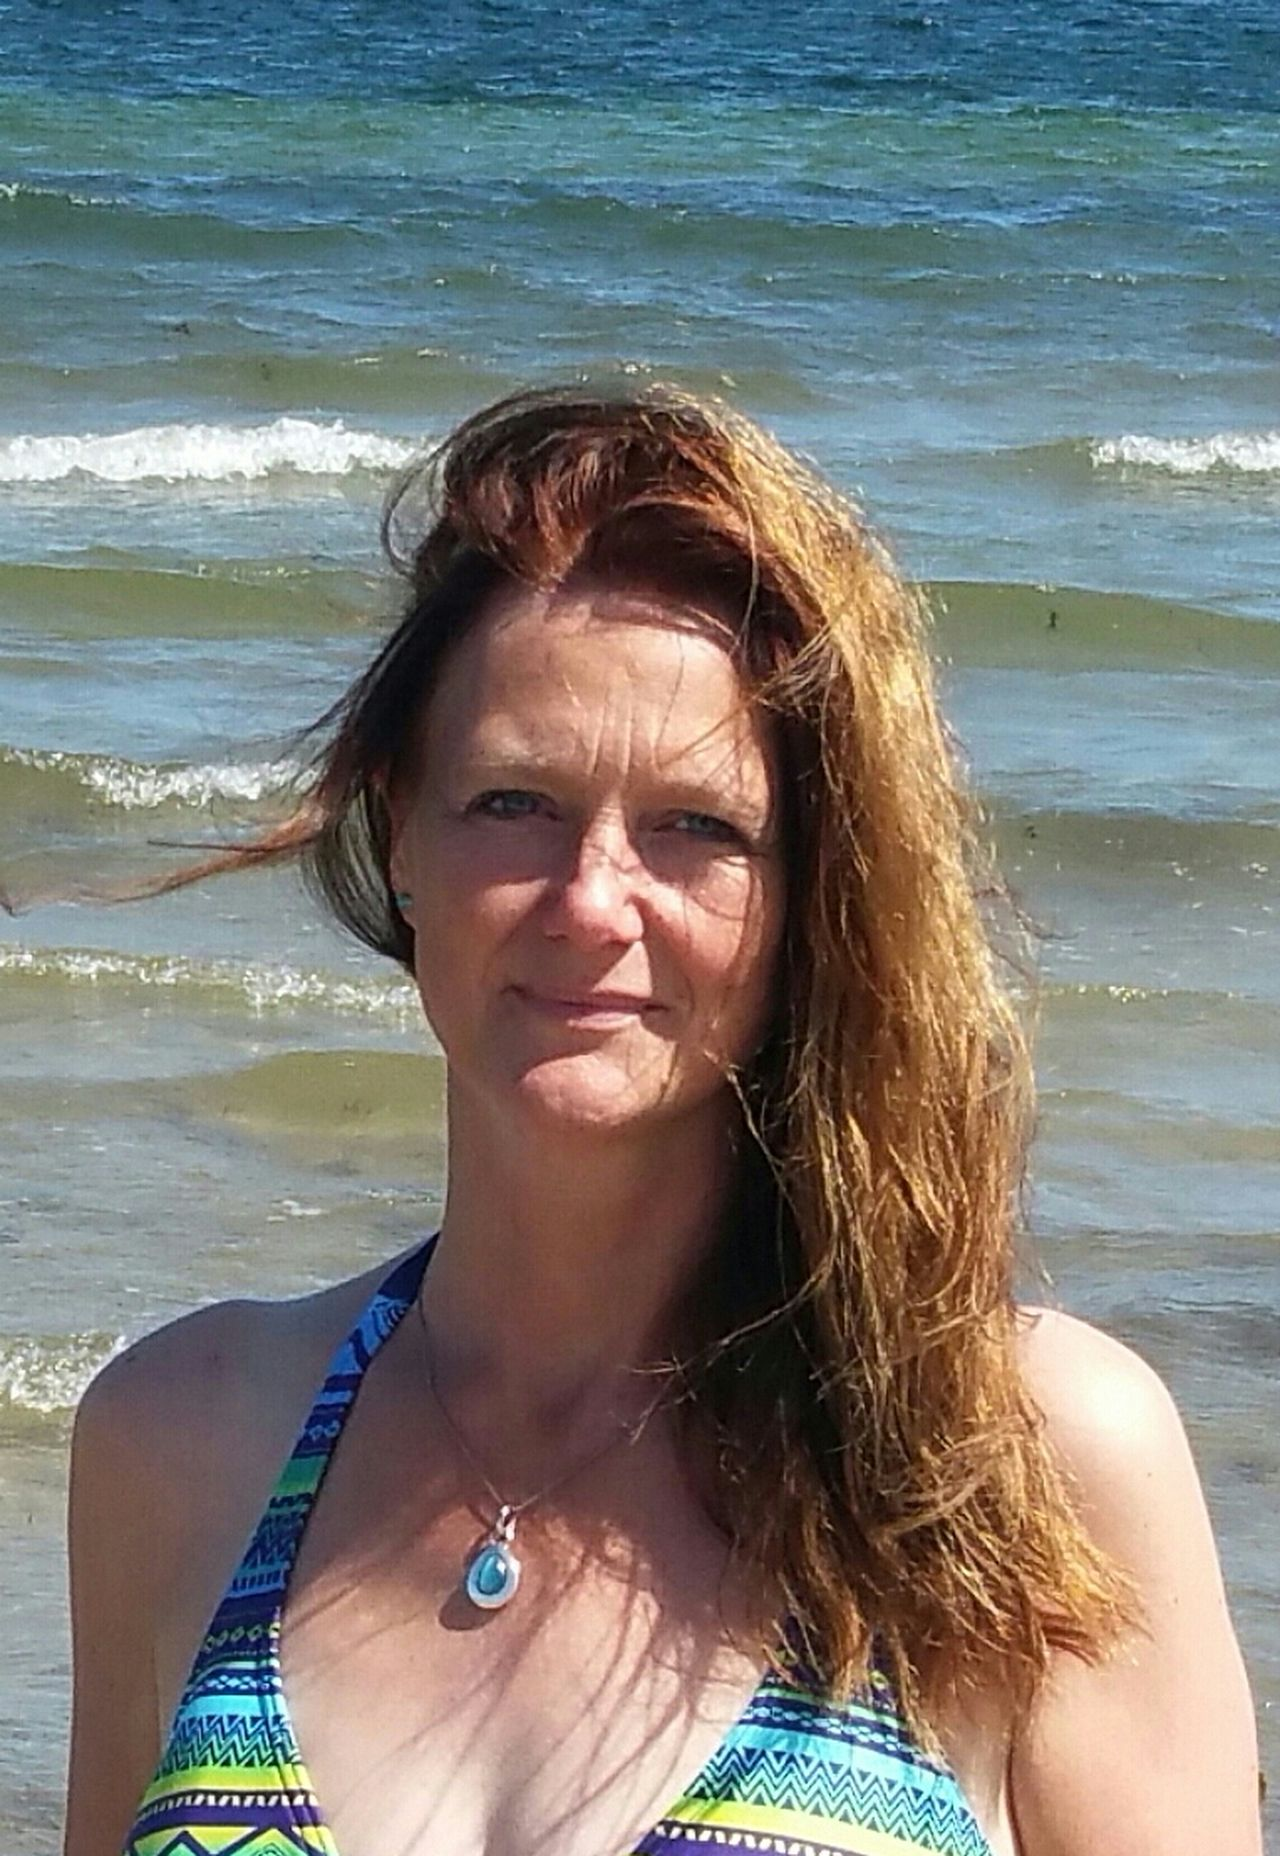 Only Women Beach Sea One Woman Only Front View Headshot Adults Only One Person Portrait Outdoors Water Looking At Camera Beautiful Woman Summer Live For The Story Itsme ItsMe:) Having Fun Enjoying The Sun Enjoying Life Denmark Danmark Vemingbund Dänemark Wind